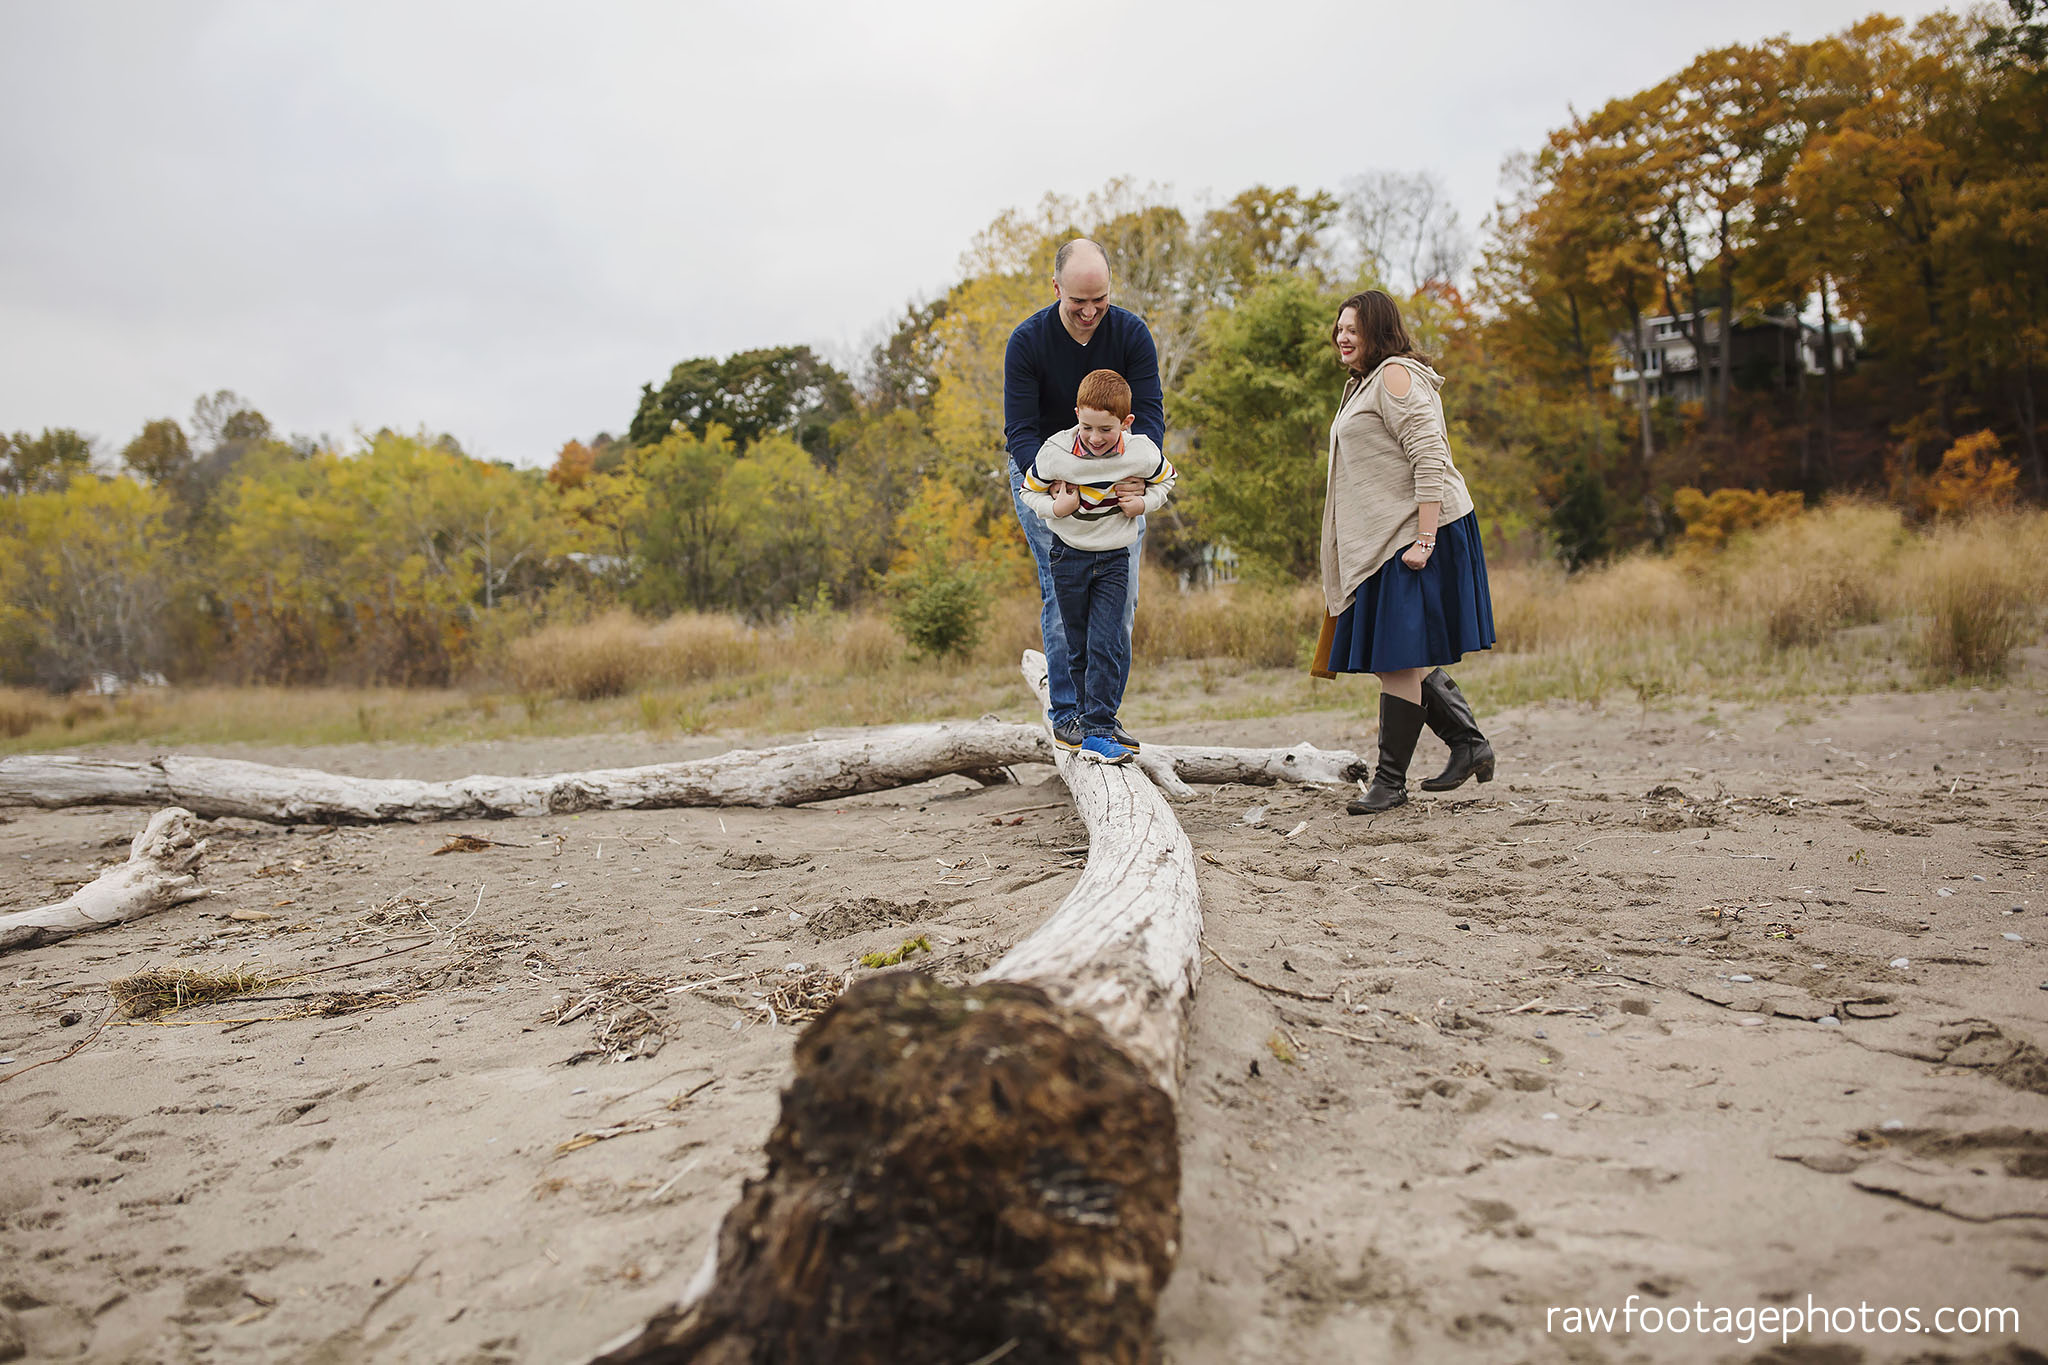 london_ontario_family_photographer-port_stanley_photography-raw_footage_photography-family_photos-beach_photos-fall_family_photos-lifestyle_family_photography-candid_photographer020.jpg